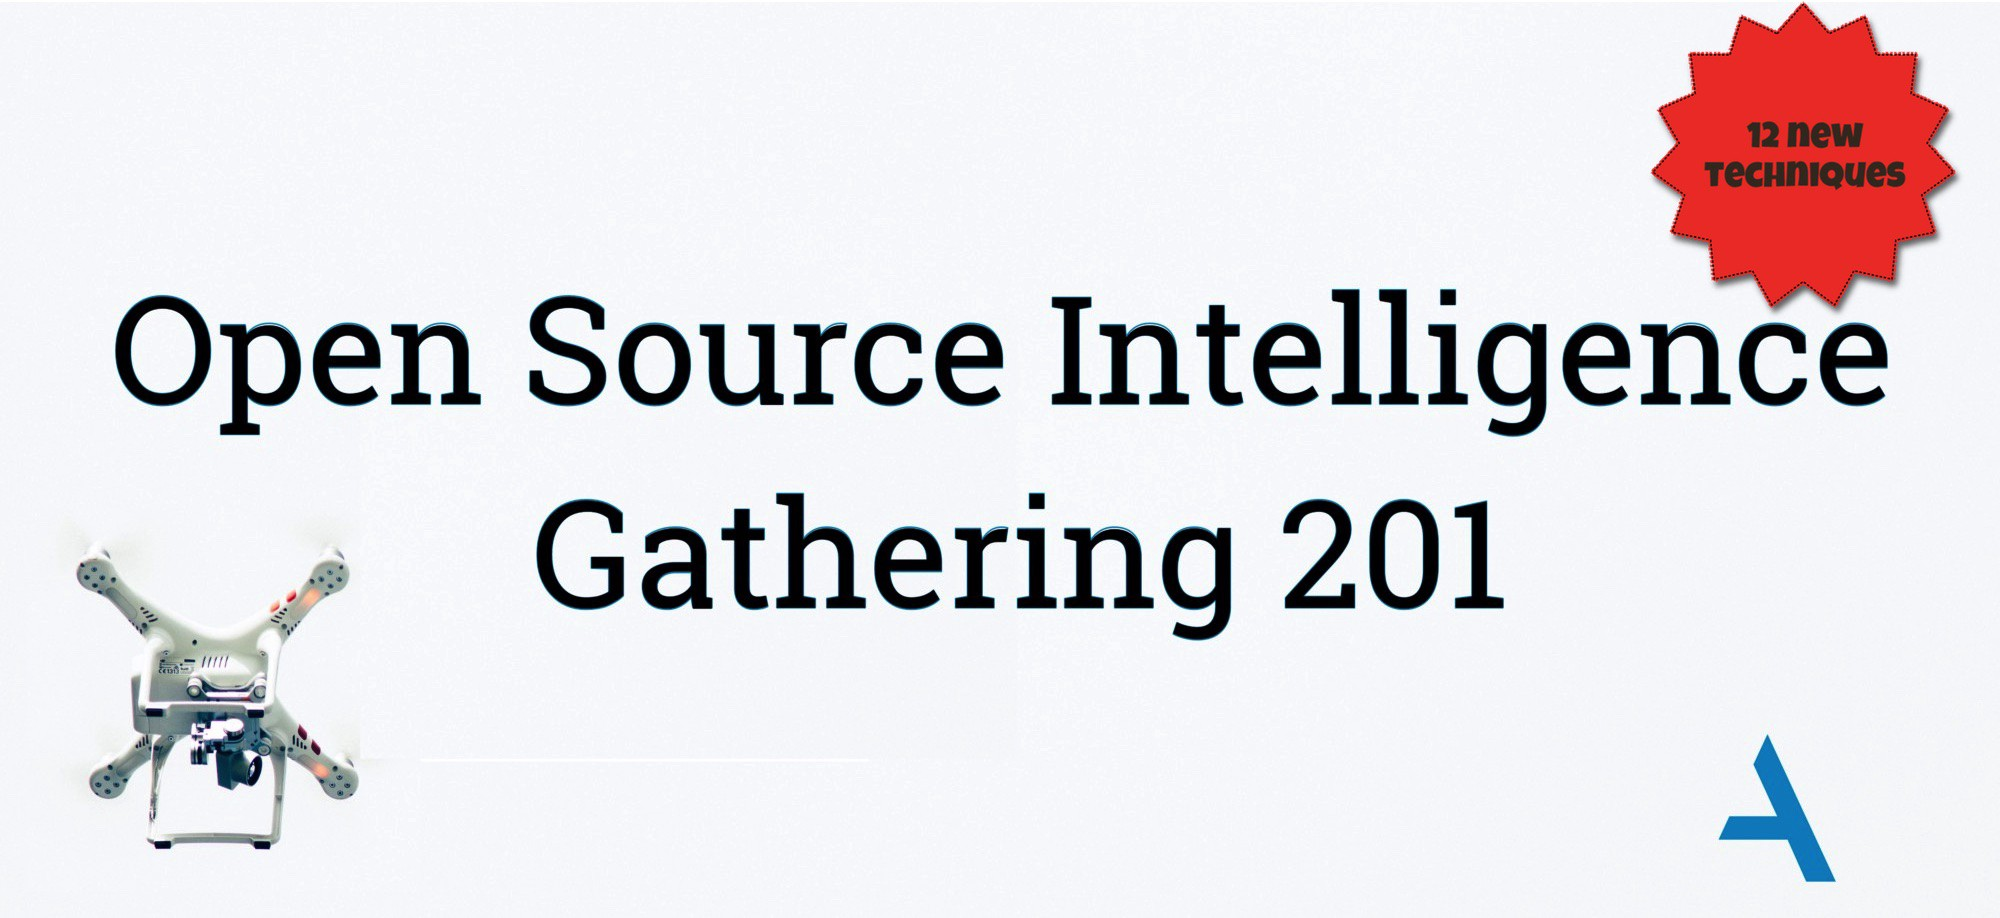 Open Source Intelligence Gathering 201 (Covering 12